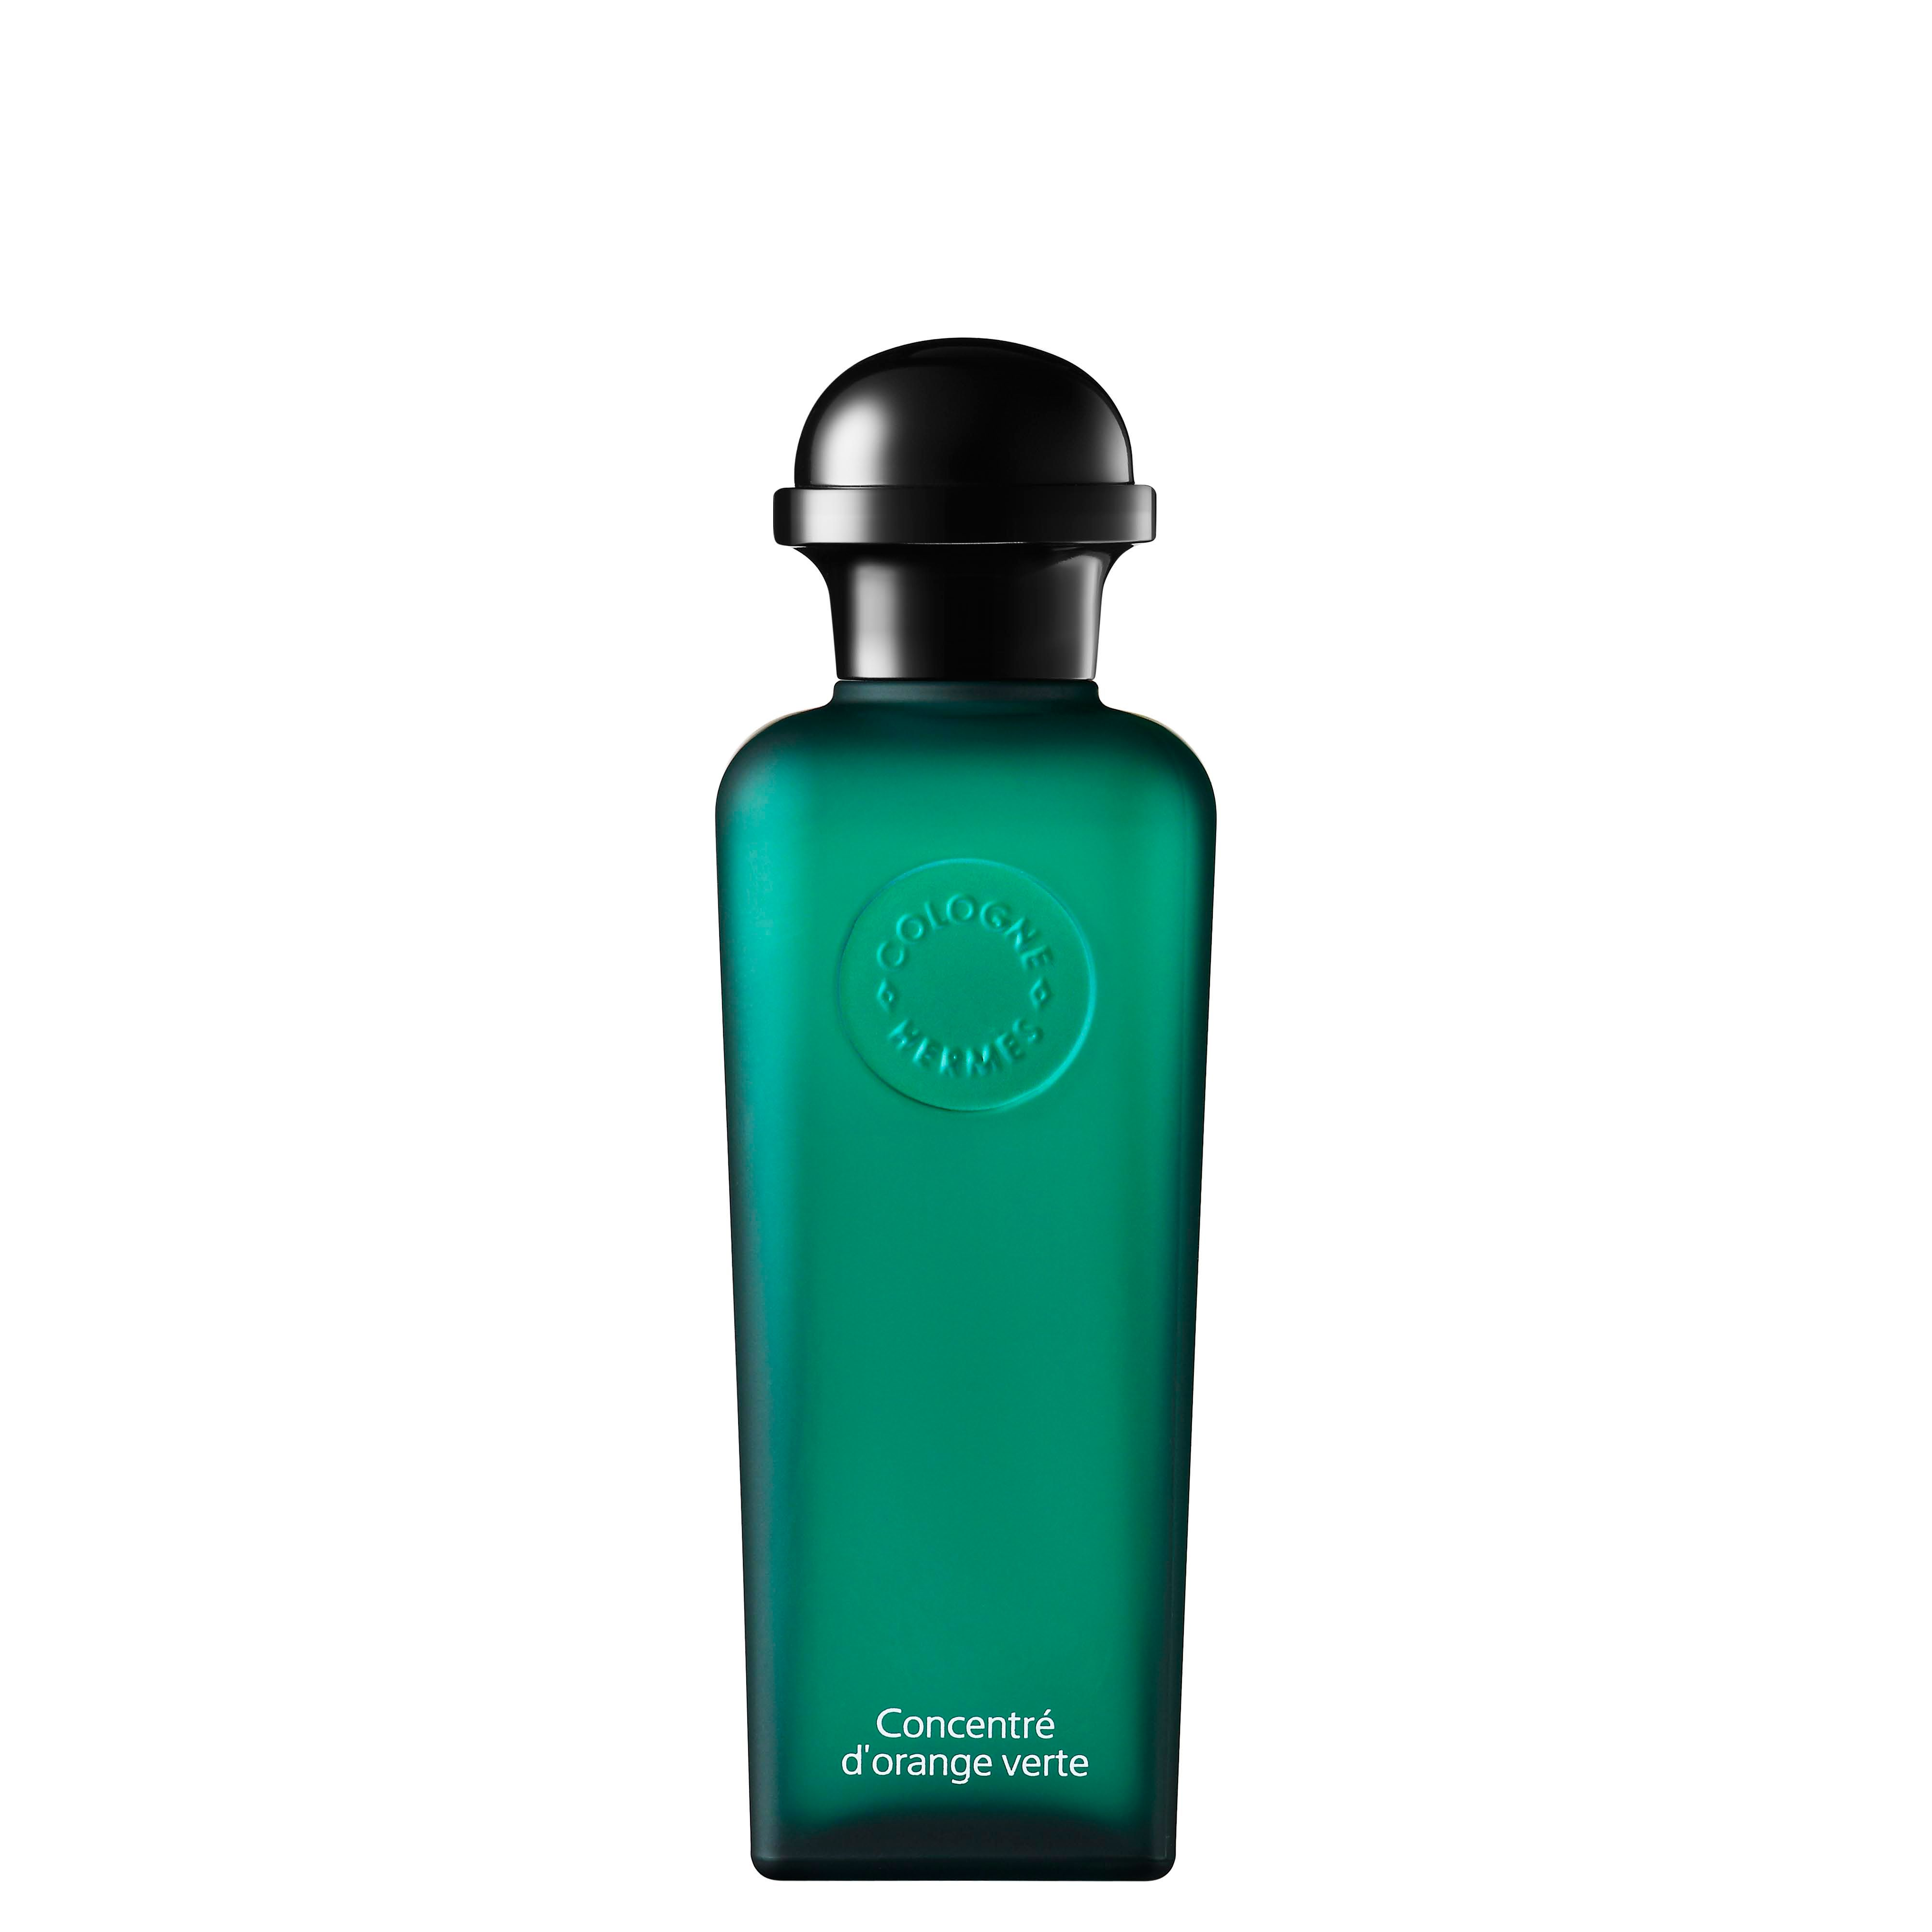 Eau d`Orange Verte Concentré Eau de Toilette